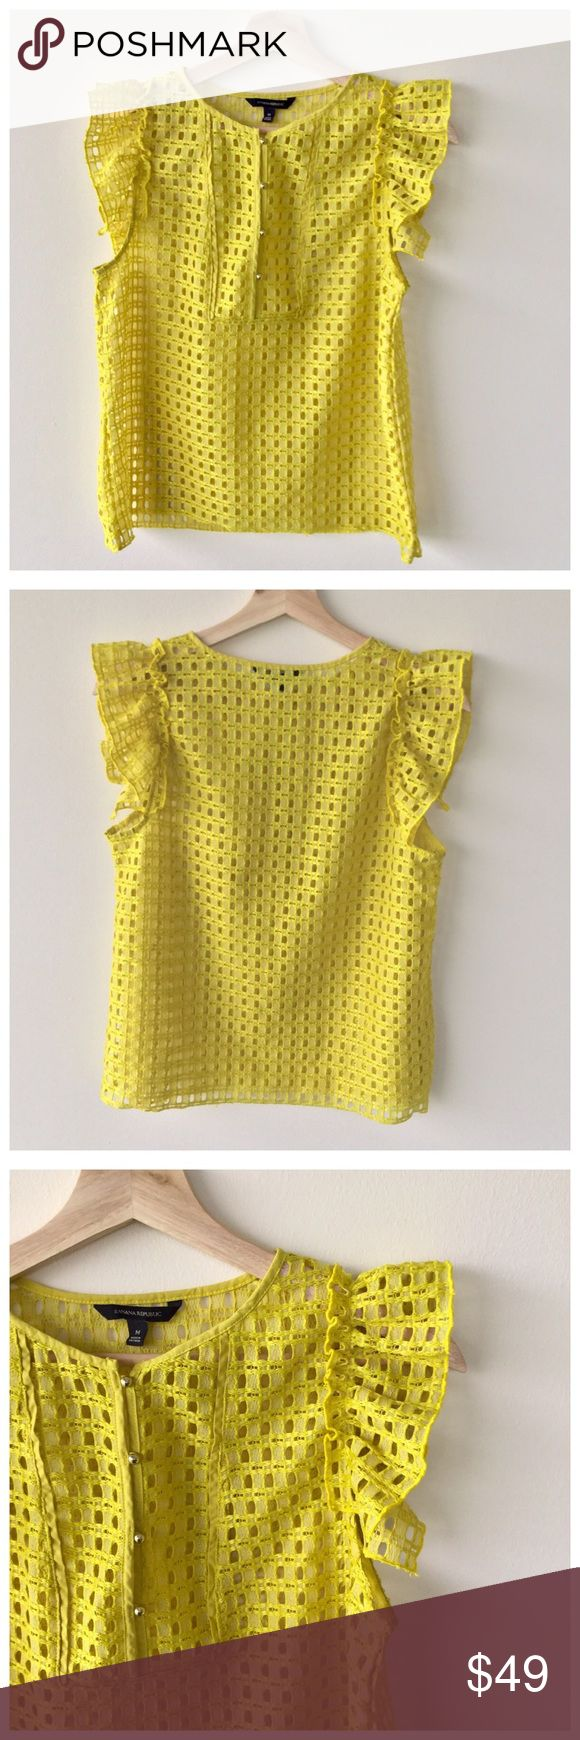 Banana Republic Lemon Yellow Lace Blouse This lemon yellow dyed lace top from Banana Republic is gorgeous! Features: Ruffled, short sleeves. Beautiful gold buttons. Lace material. Round neckline. Light natural wear. Cotton.    cc Banana Republic Tops Blouses